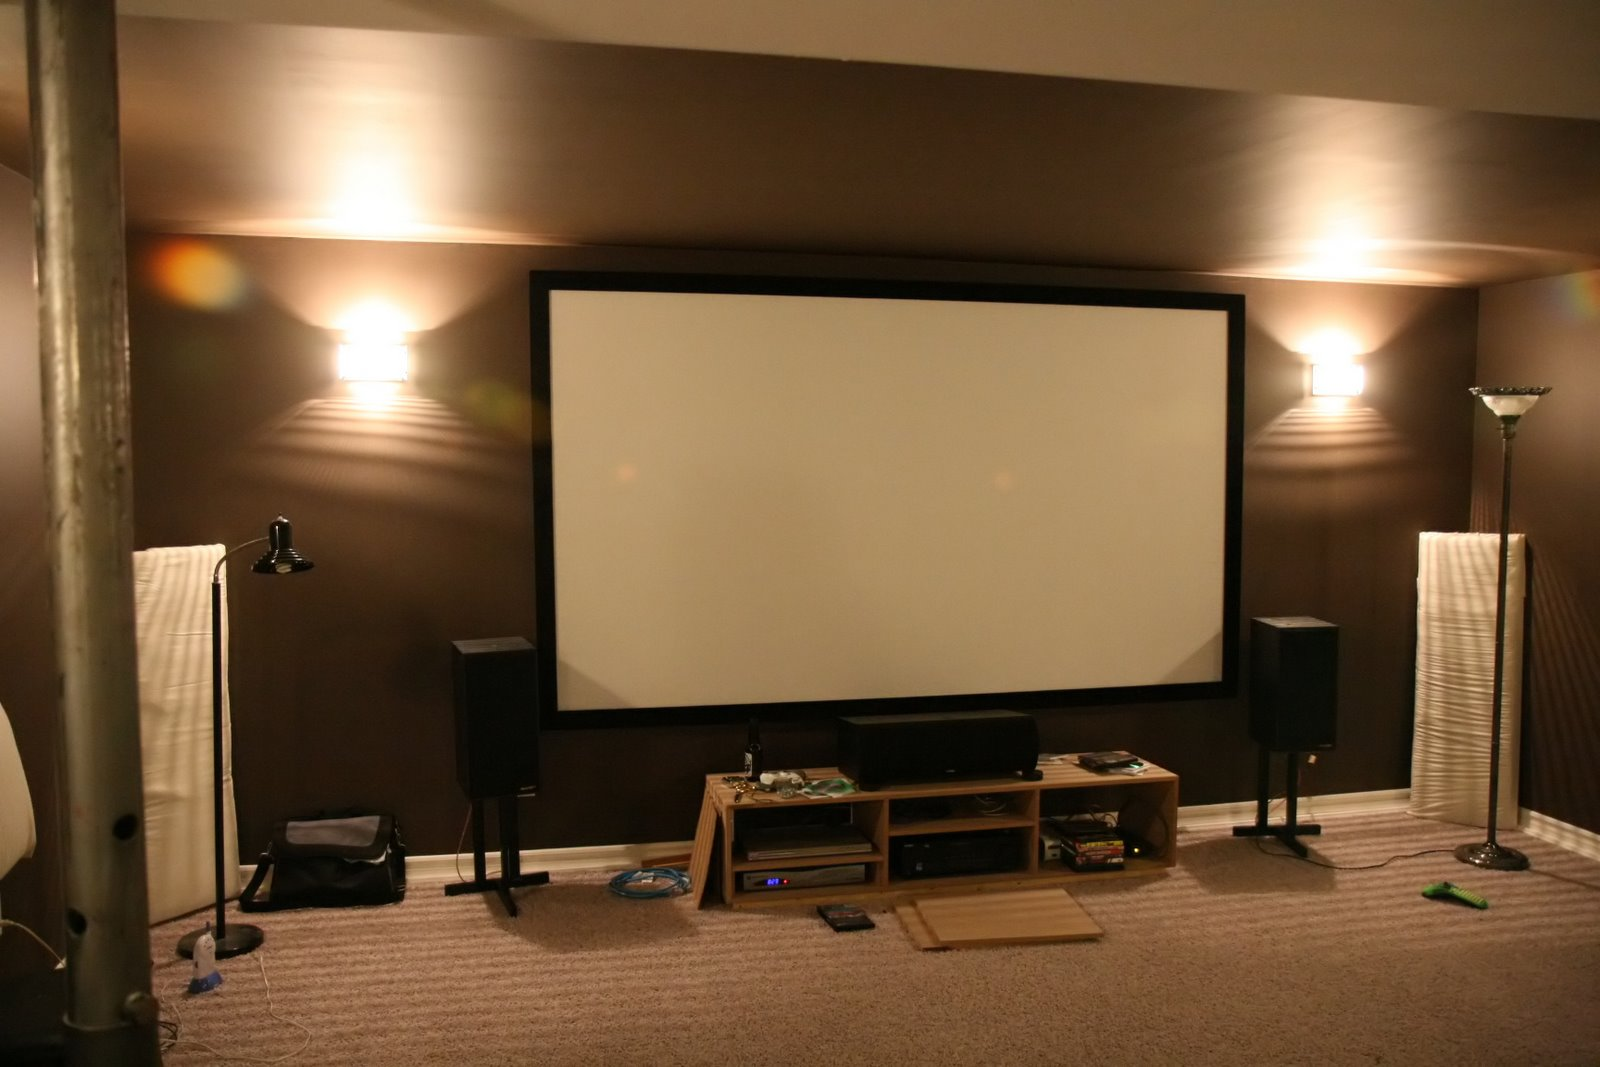 Diy Entertainment Unit For Under Projector Screen